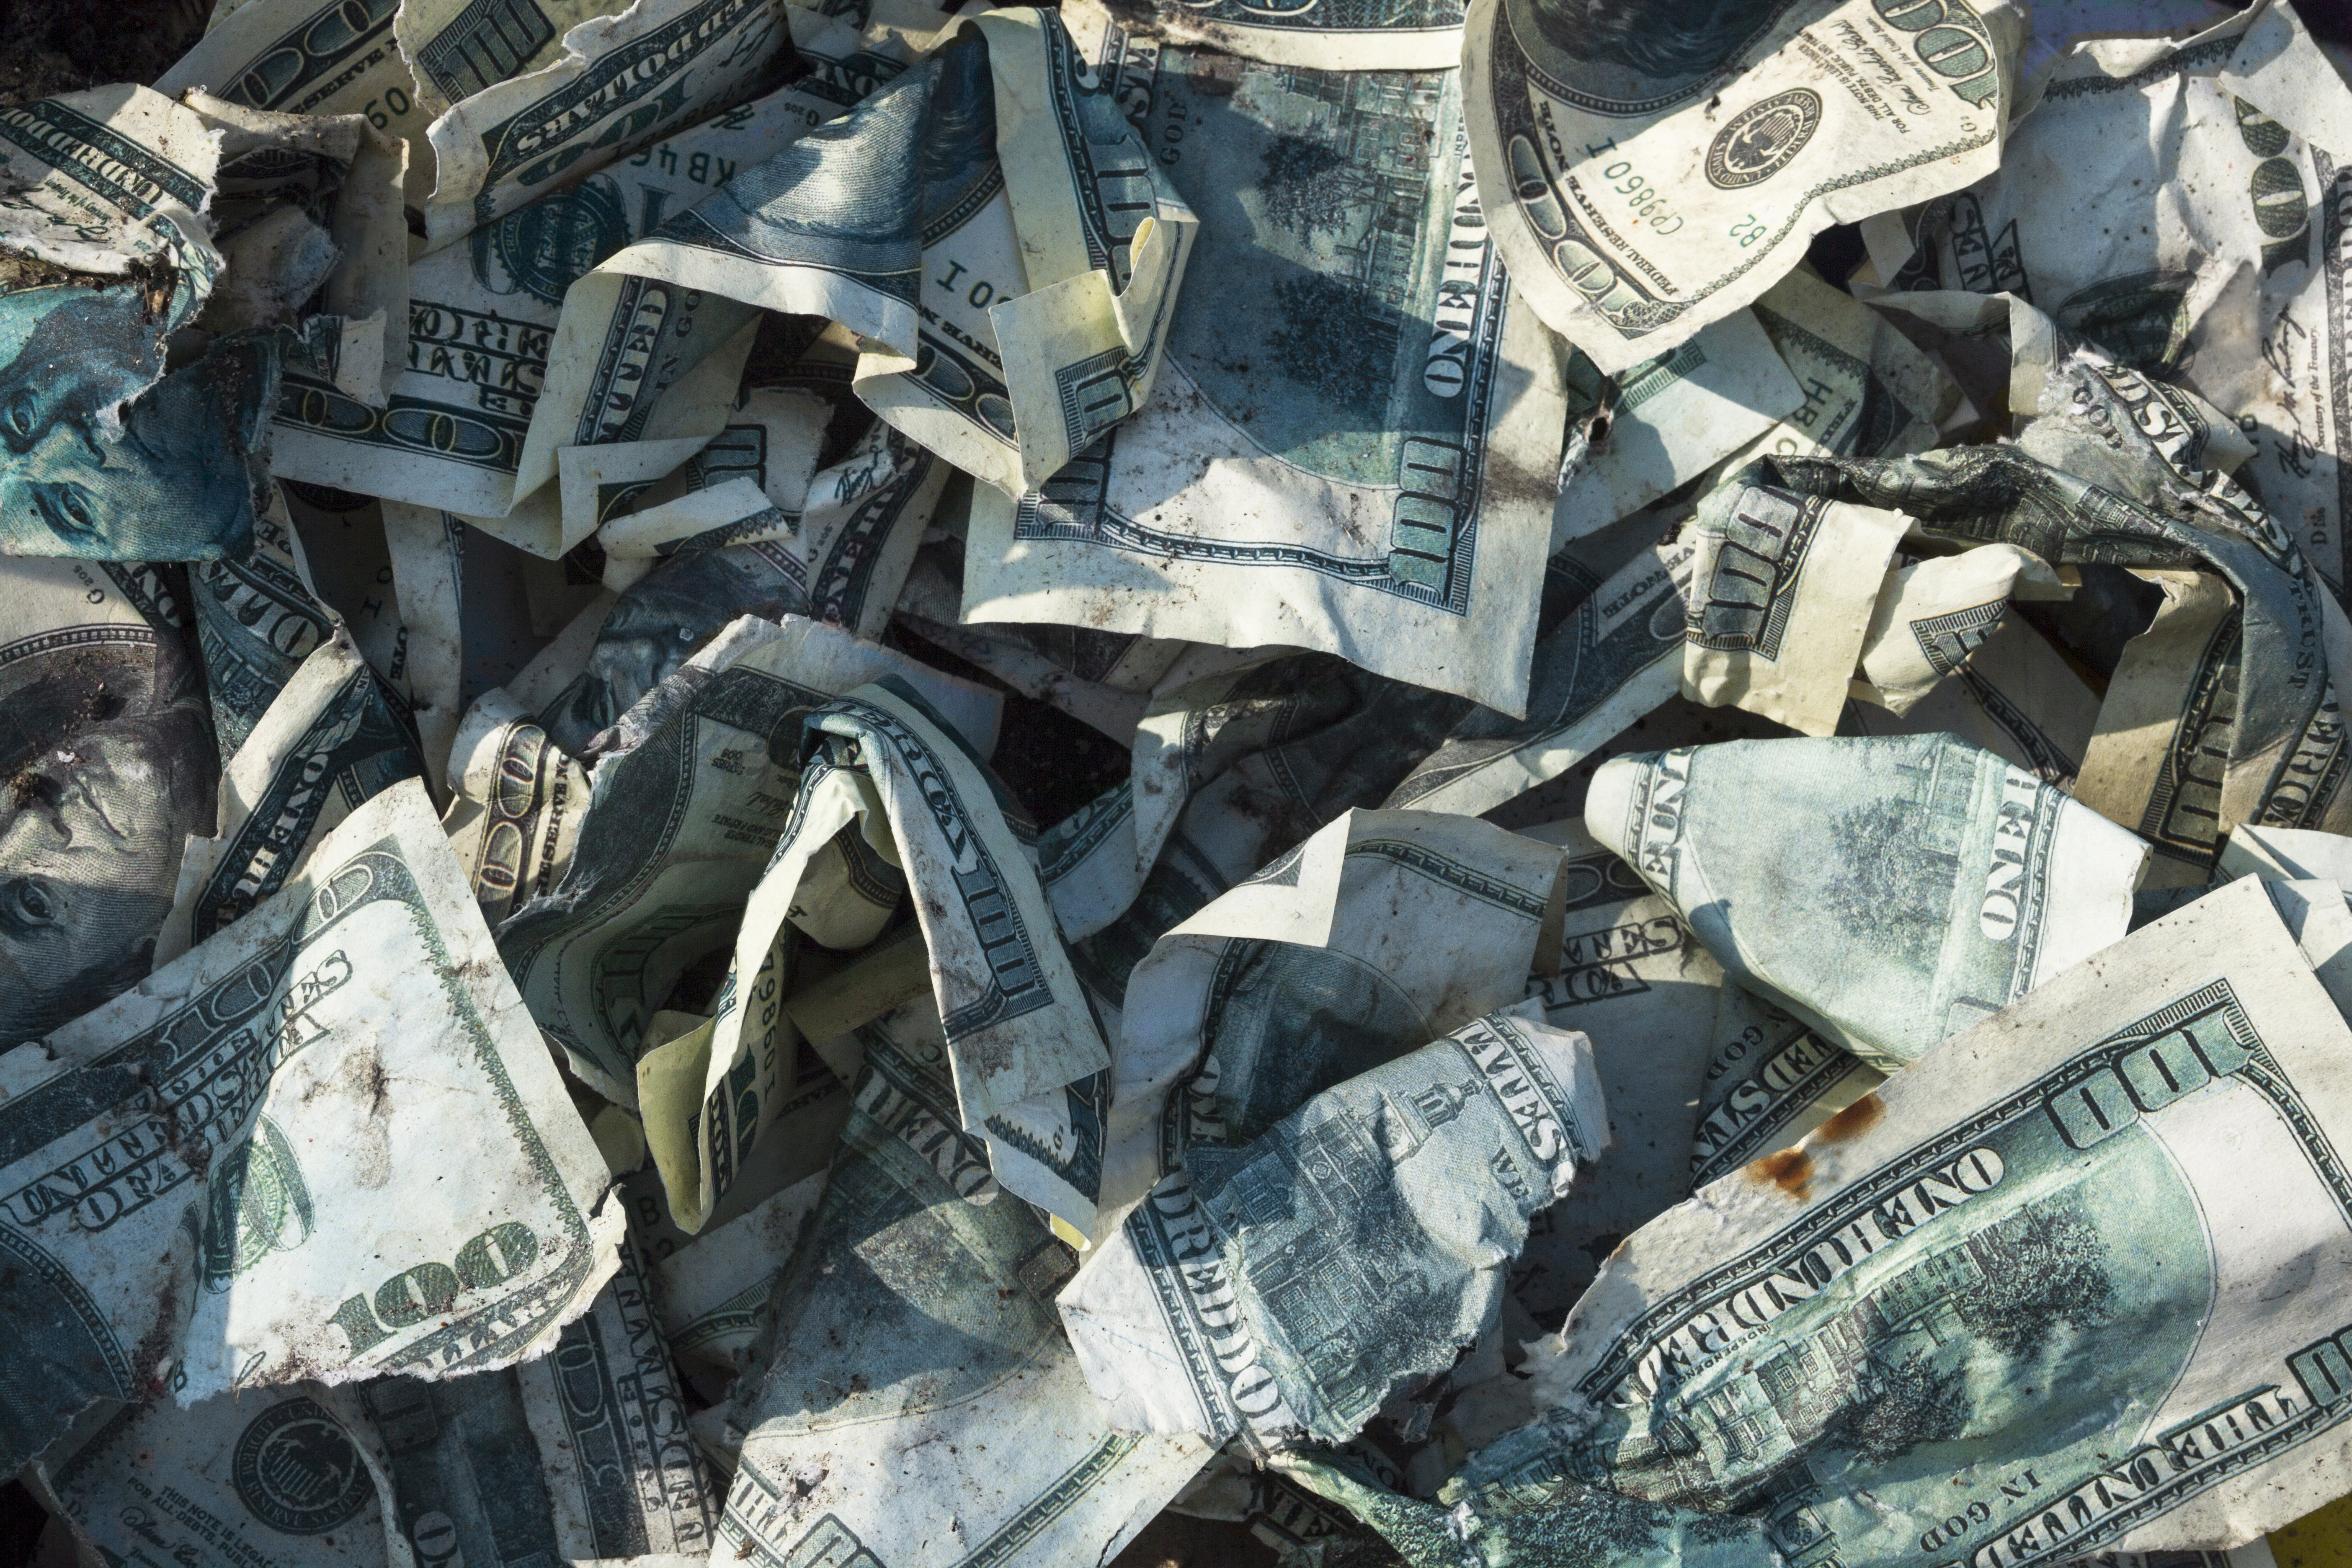 A large number of bills | Photo: Shutterstock